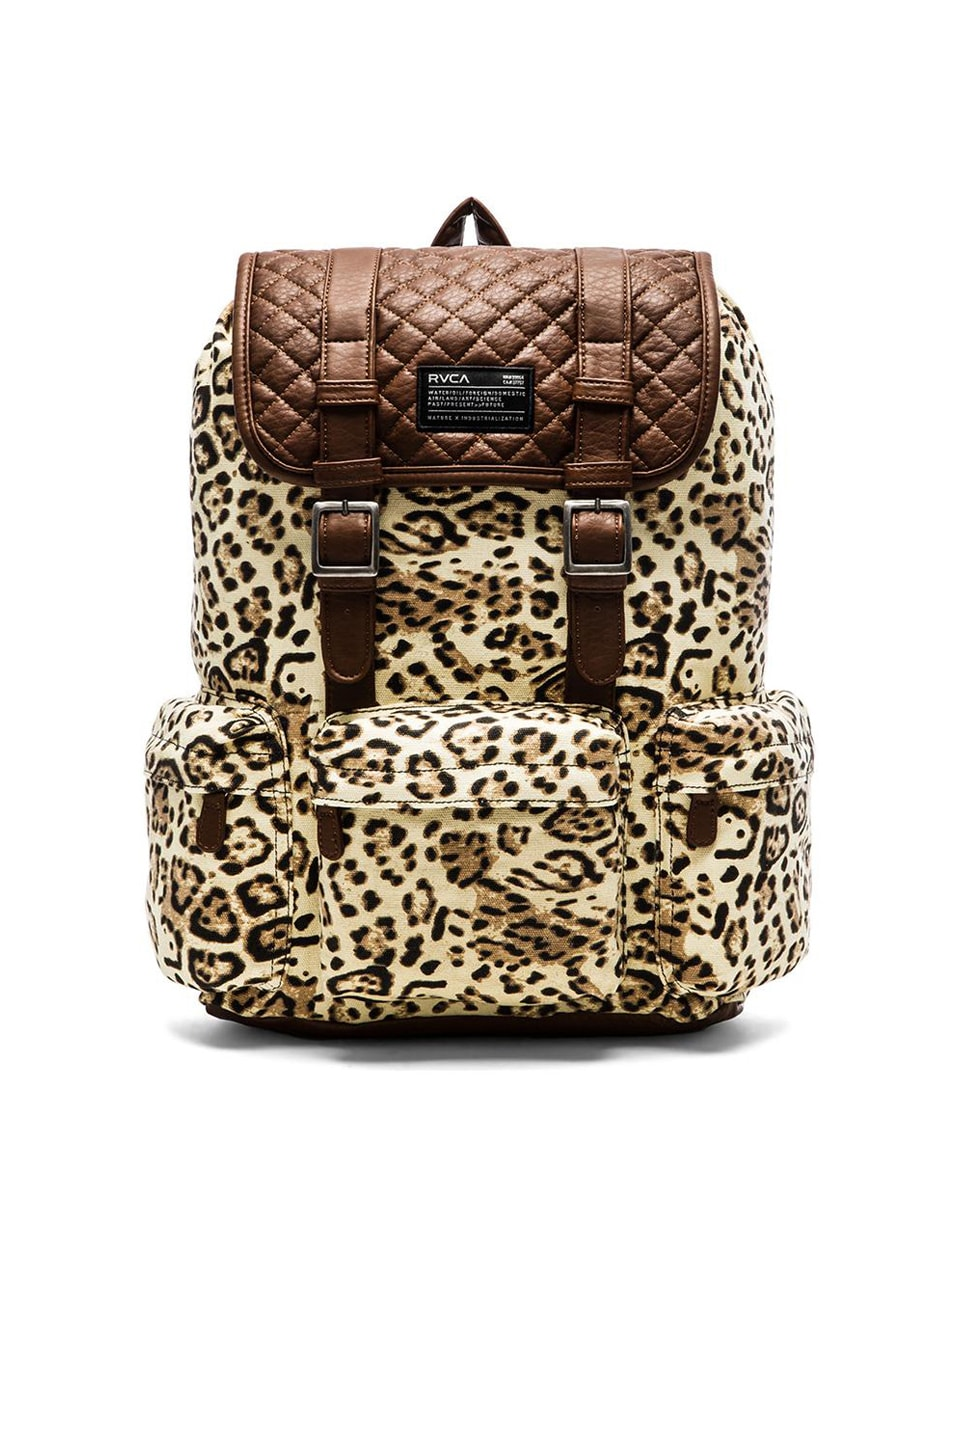 RVCA Lovoni Backpack in Natural